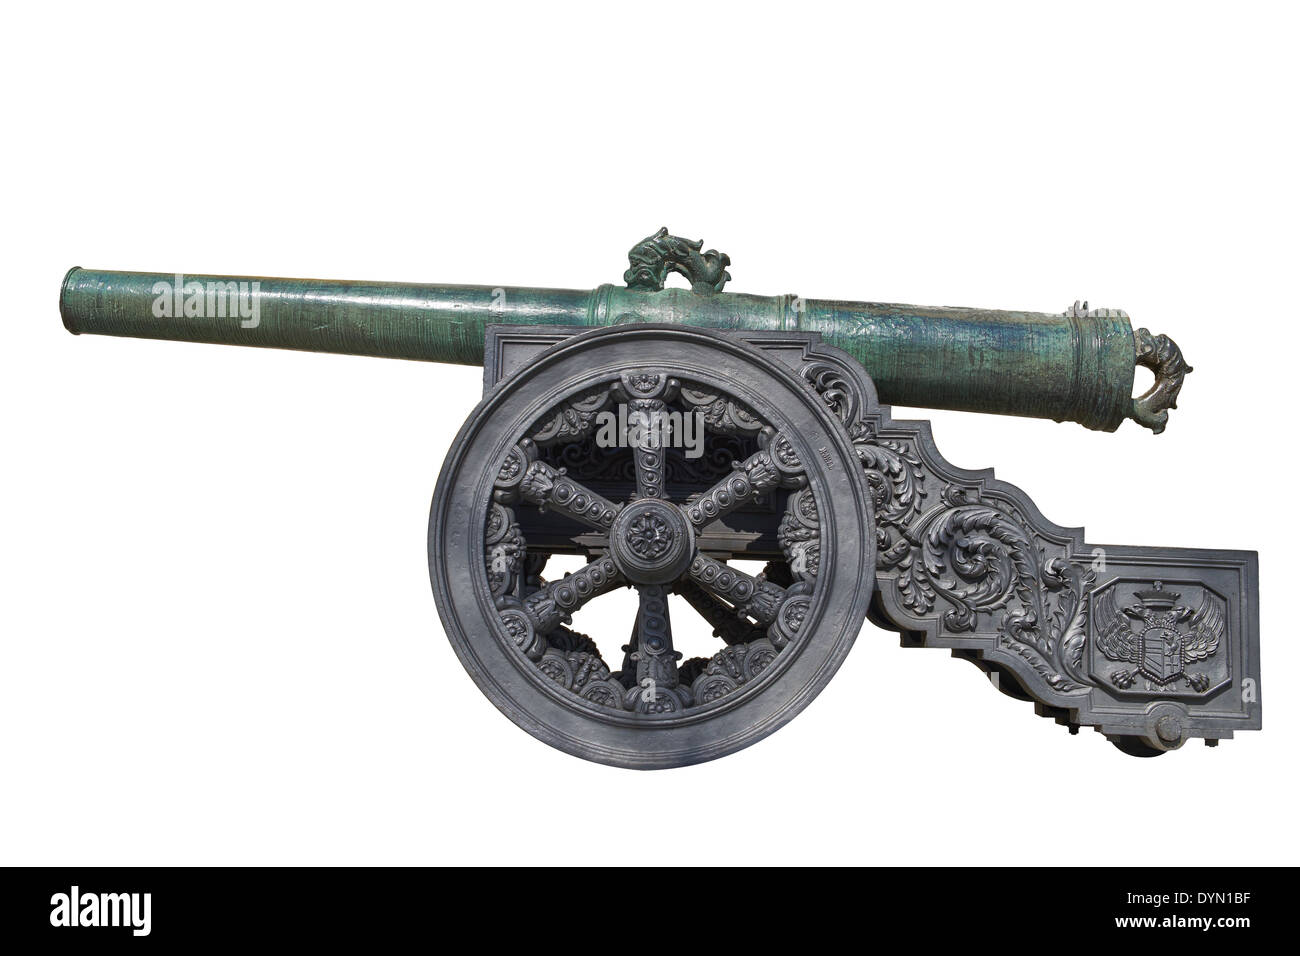 Ancient cannon on wheels isolated on white - Stock Image